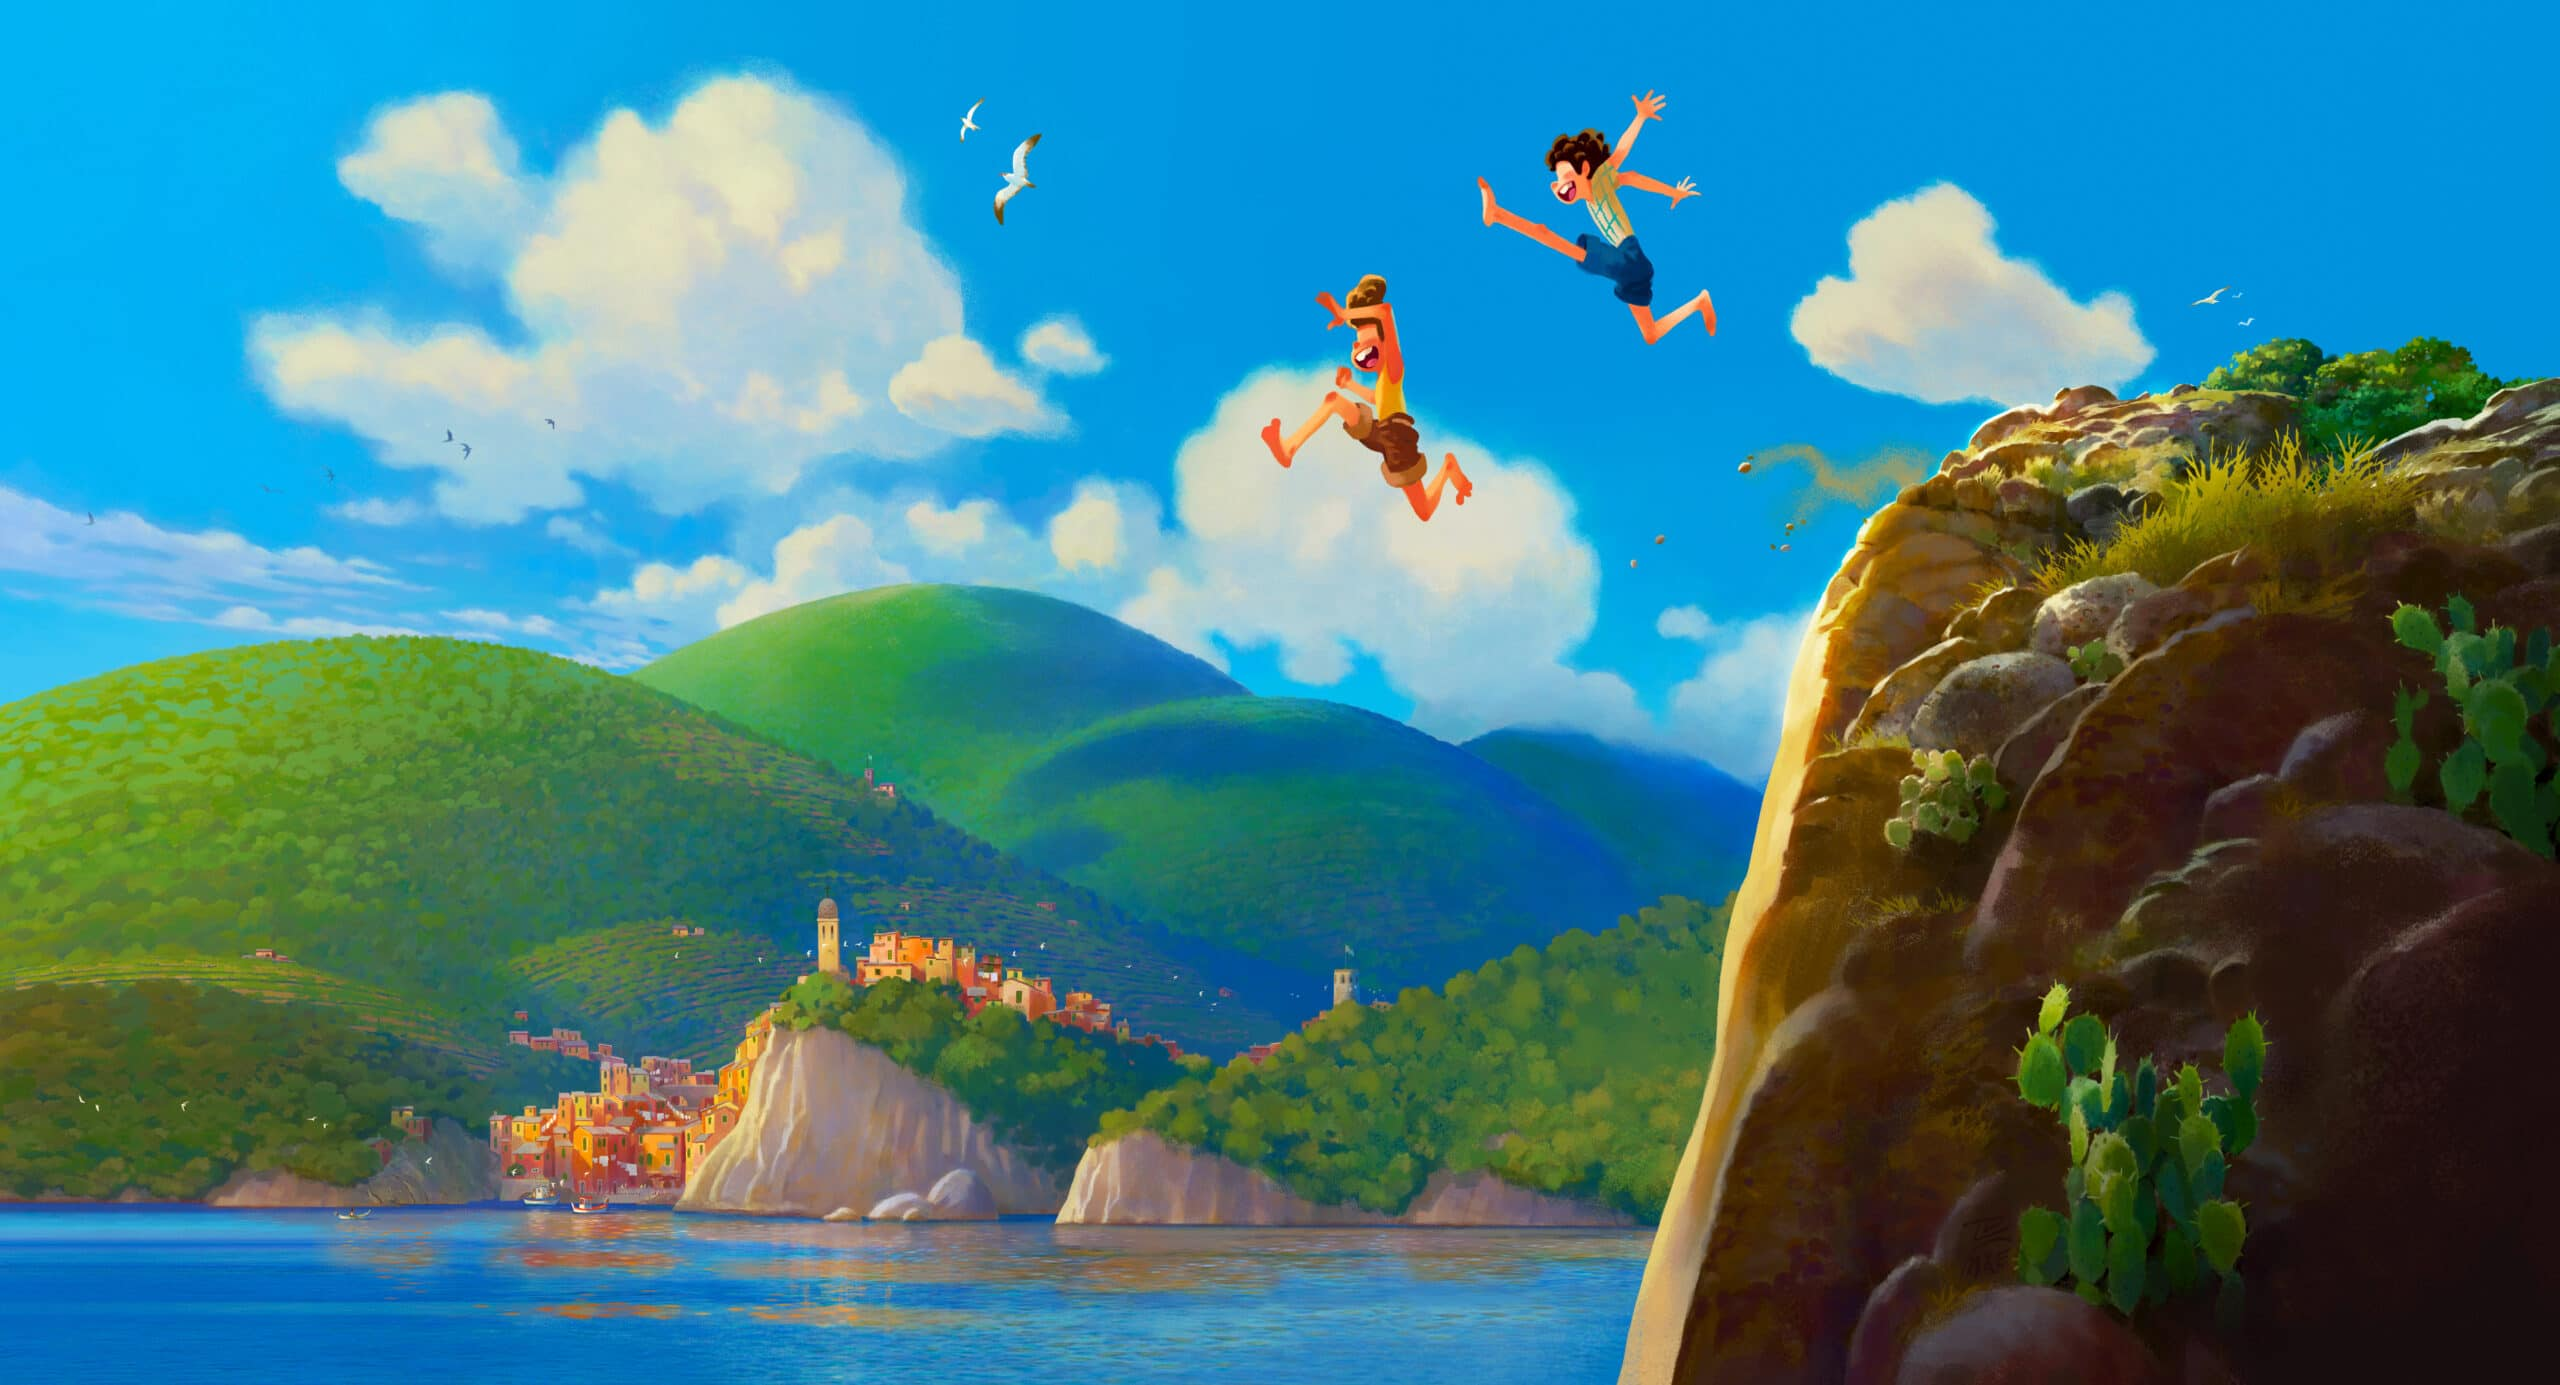 "Set in a beautiful seaside town on the Italian Riviera, the original animated feature is a coming-of-age story about one young boy experiencing an unforgettable summer filled with gelato, pasta, and endless scooter rides. Disney Pixar's ""Luca"" is set to open in U.S. theaters June 18, 2021."